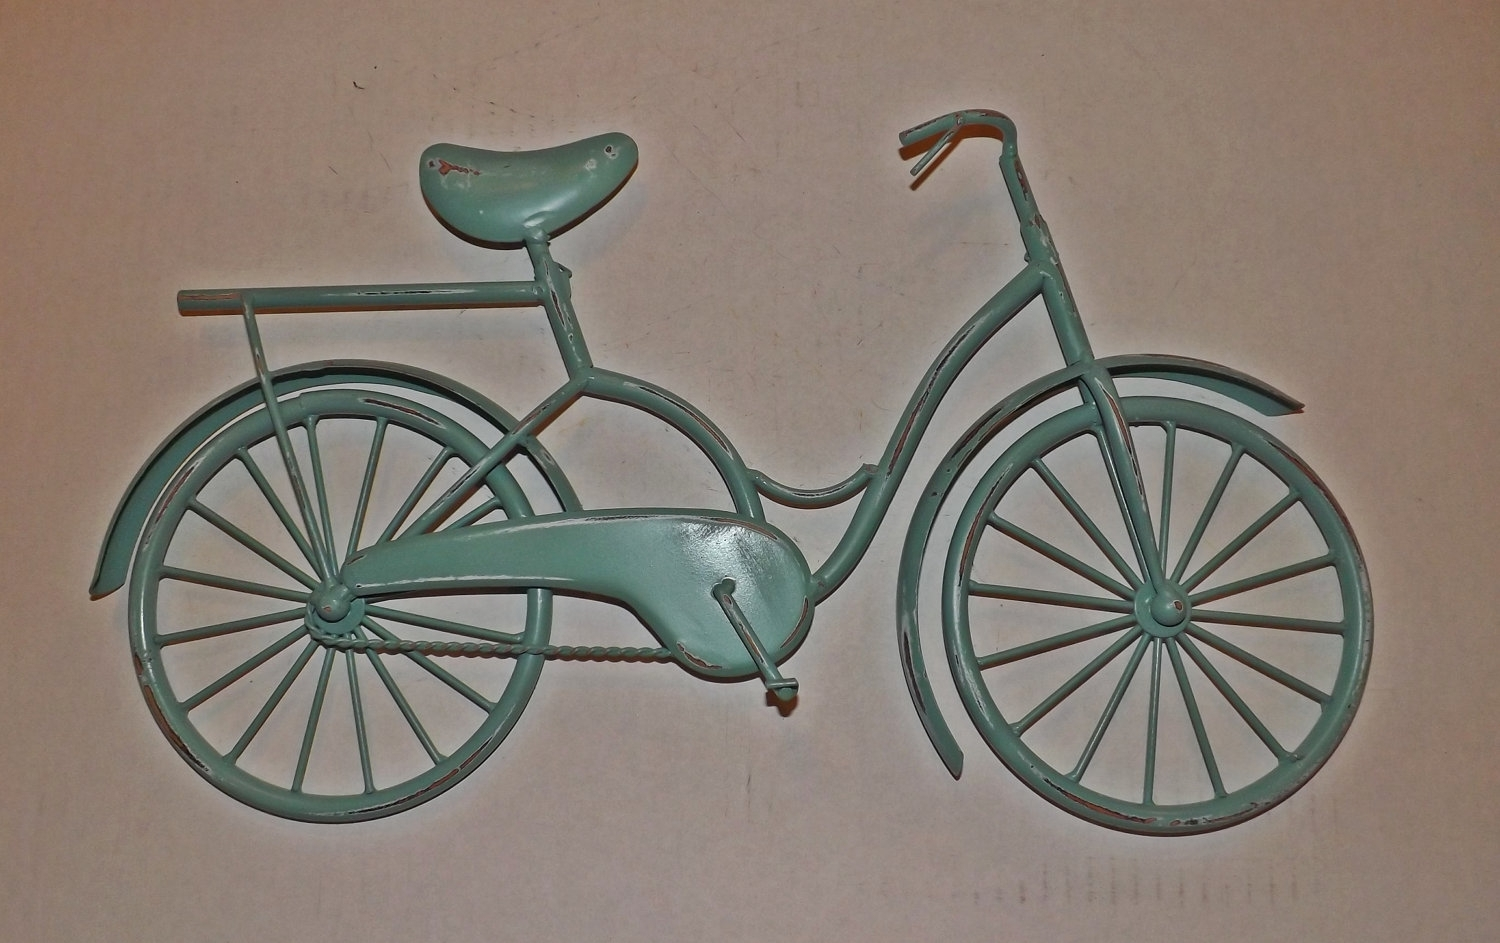 Wall Art Bicycle – Elitflat Throughout Most Up To Date Bicycle Wall Art (View 17 of 20)